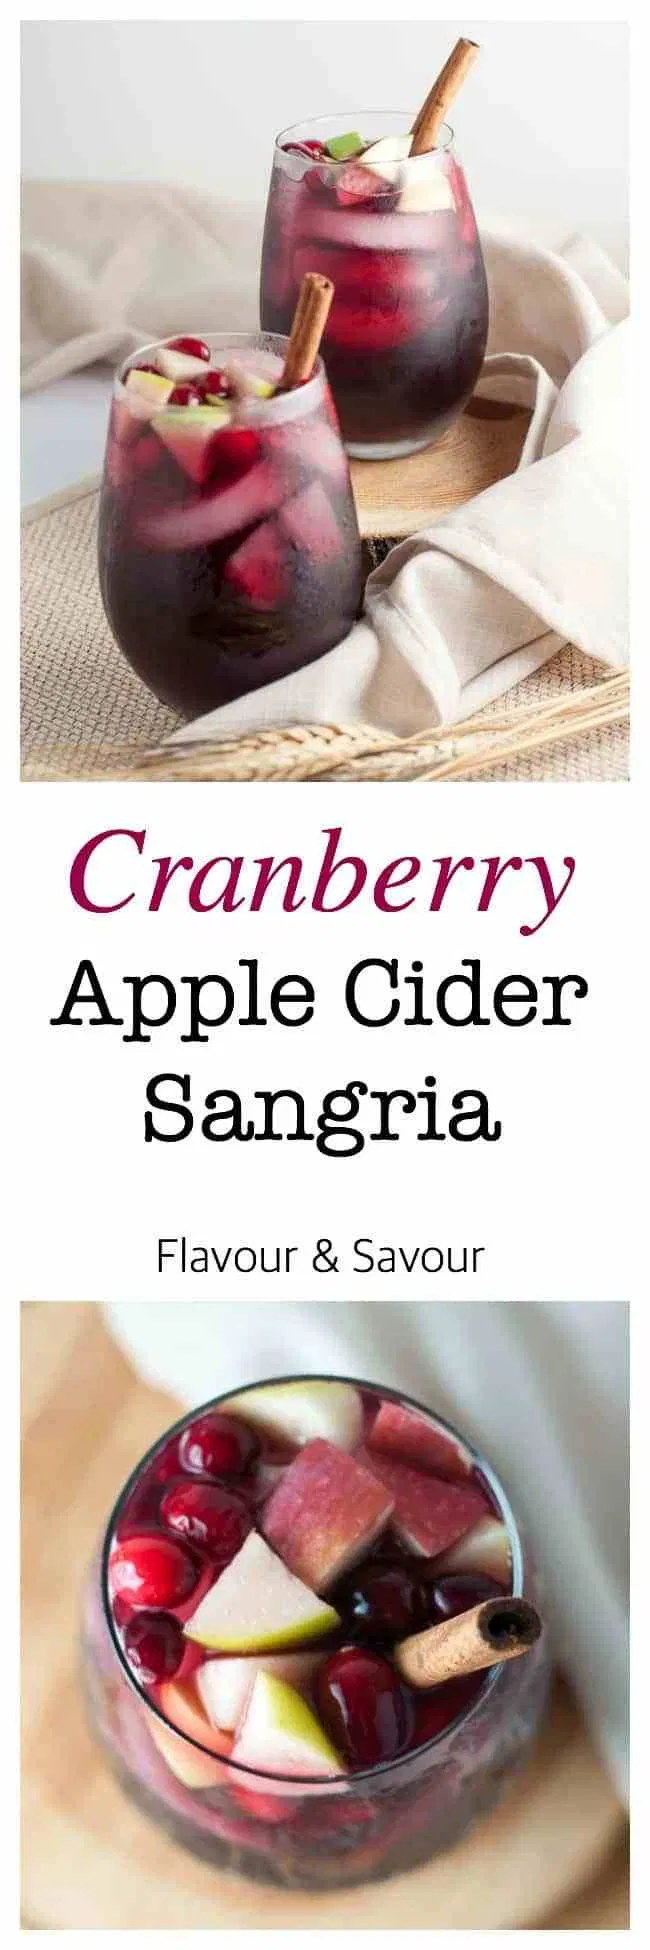 Cranberry Apple Cider Sangria #boissonsfraîches